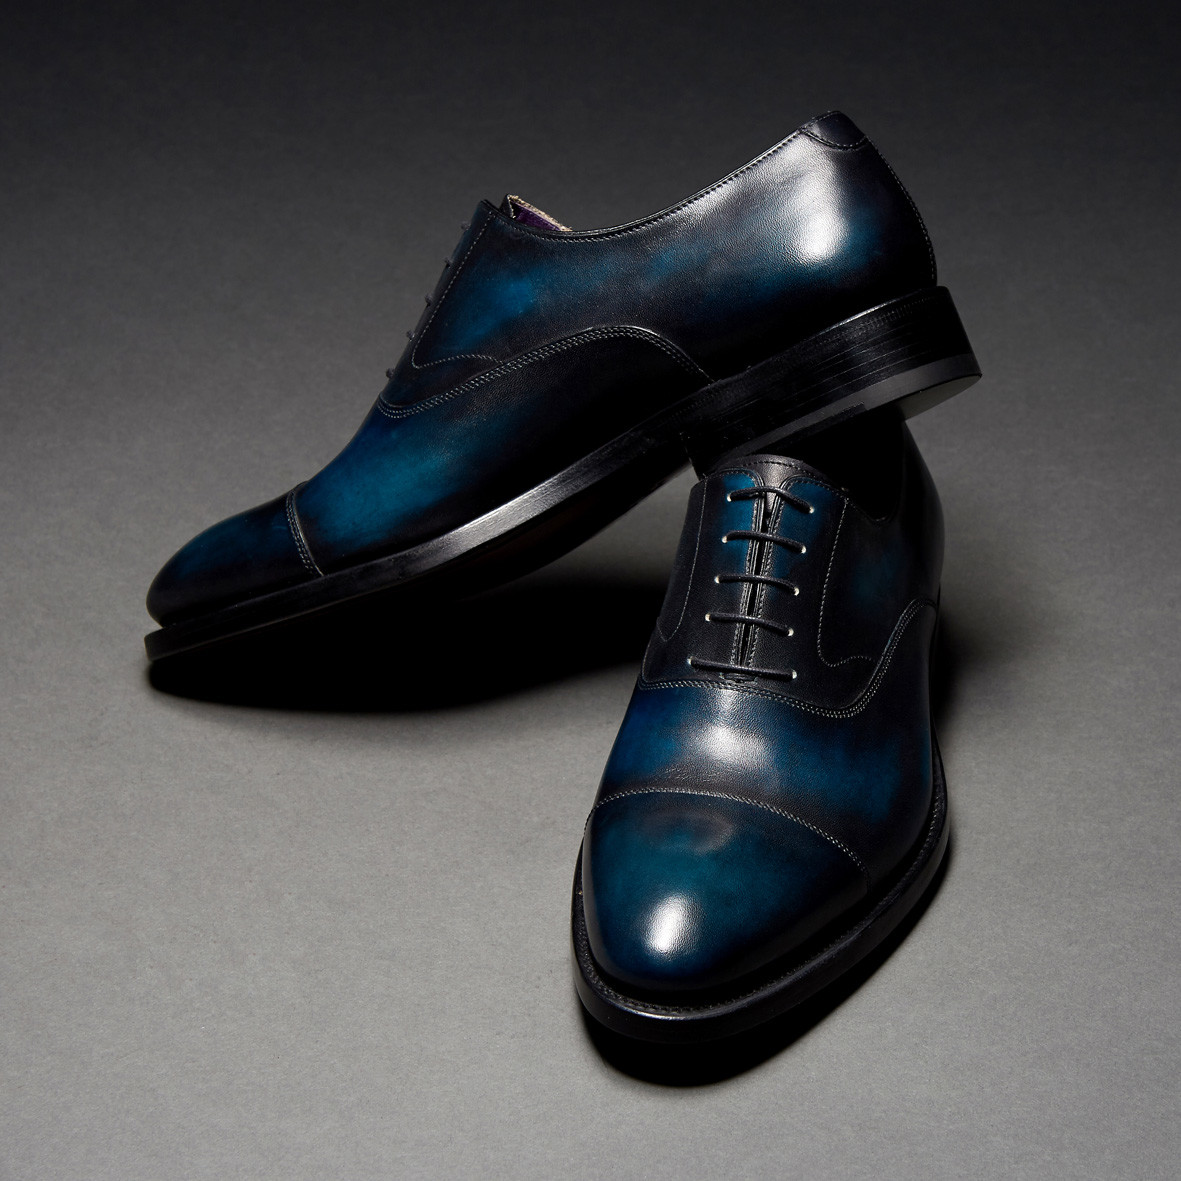 [Custommania X The shuri] PATINA STRAIGHT TIP OXFORD OFR No.251